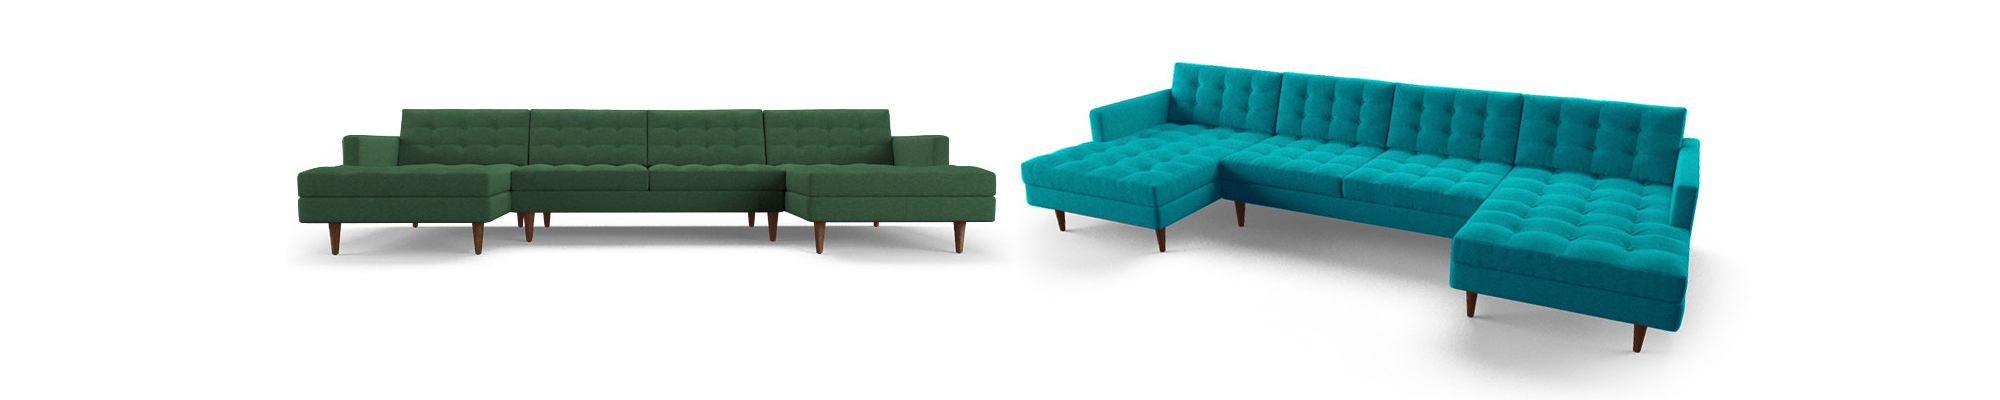 rendered-visualize-eliot-u-chaise-sectional